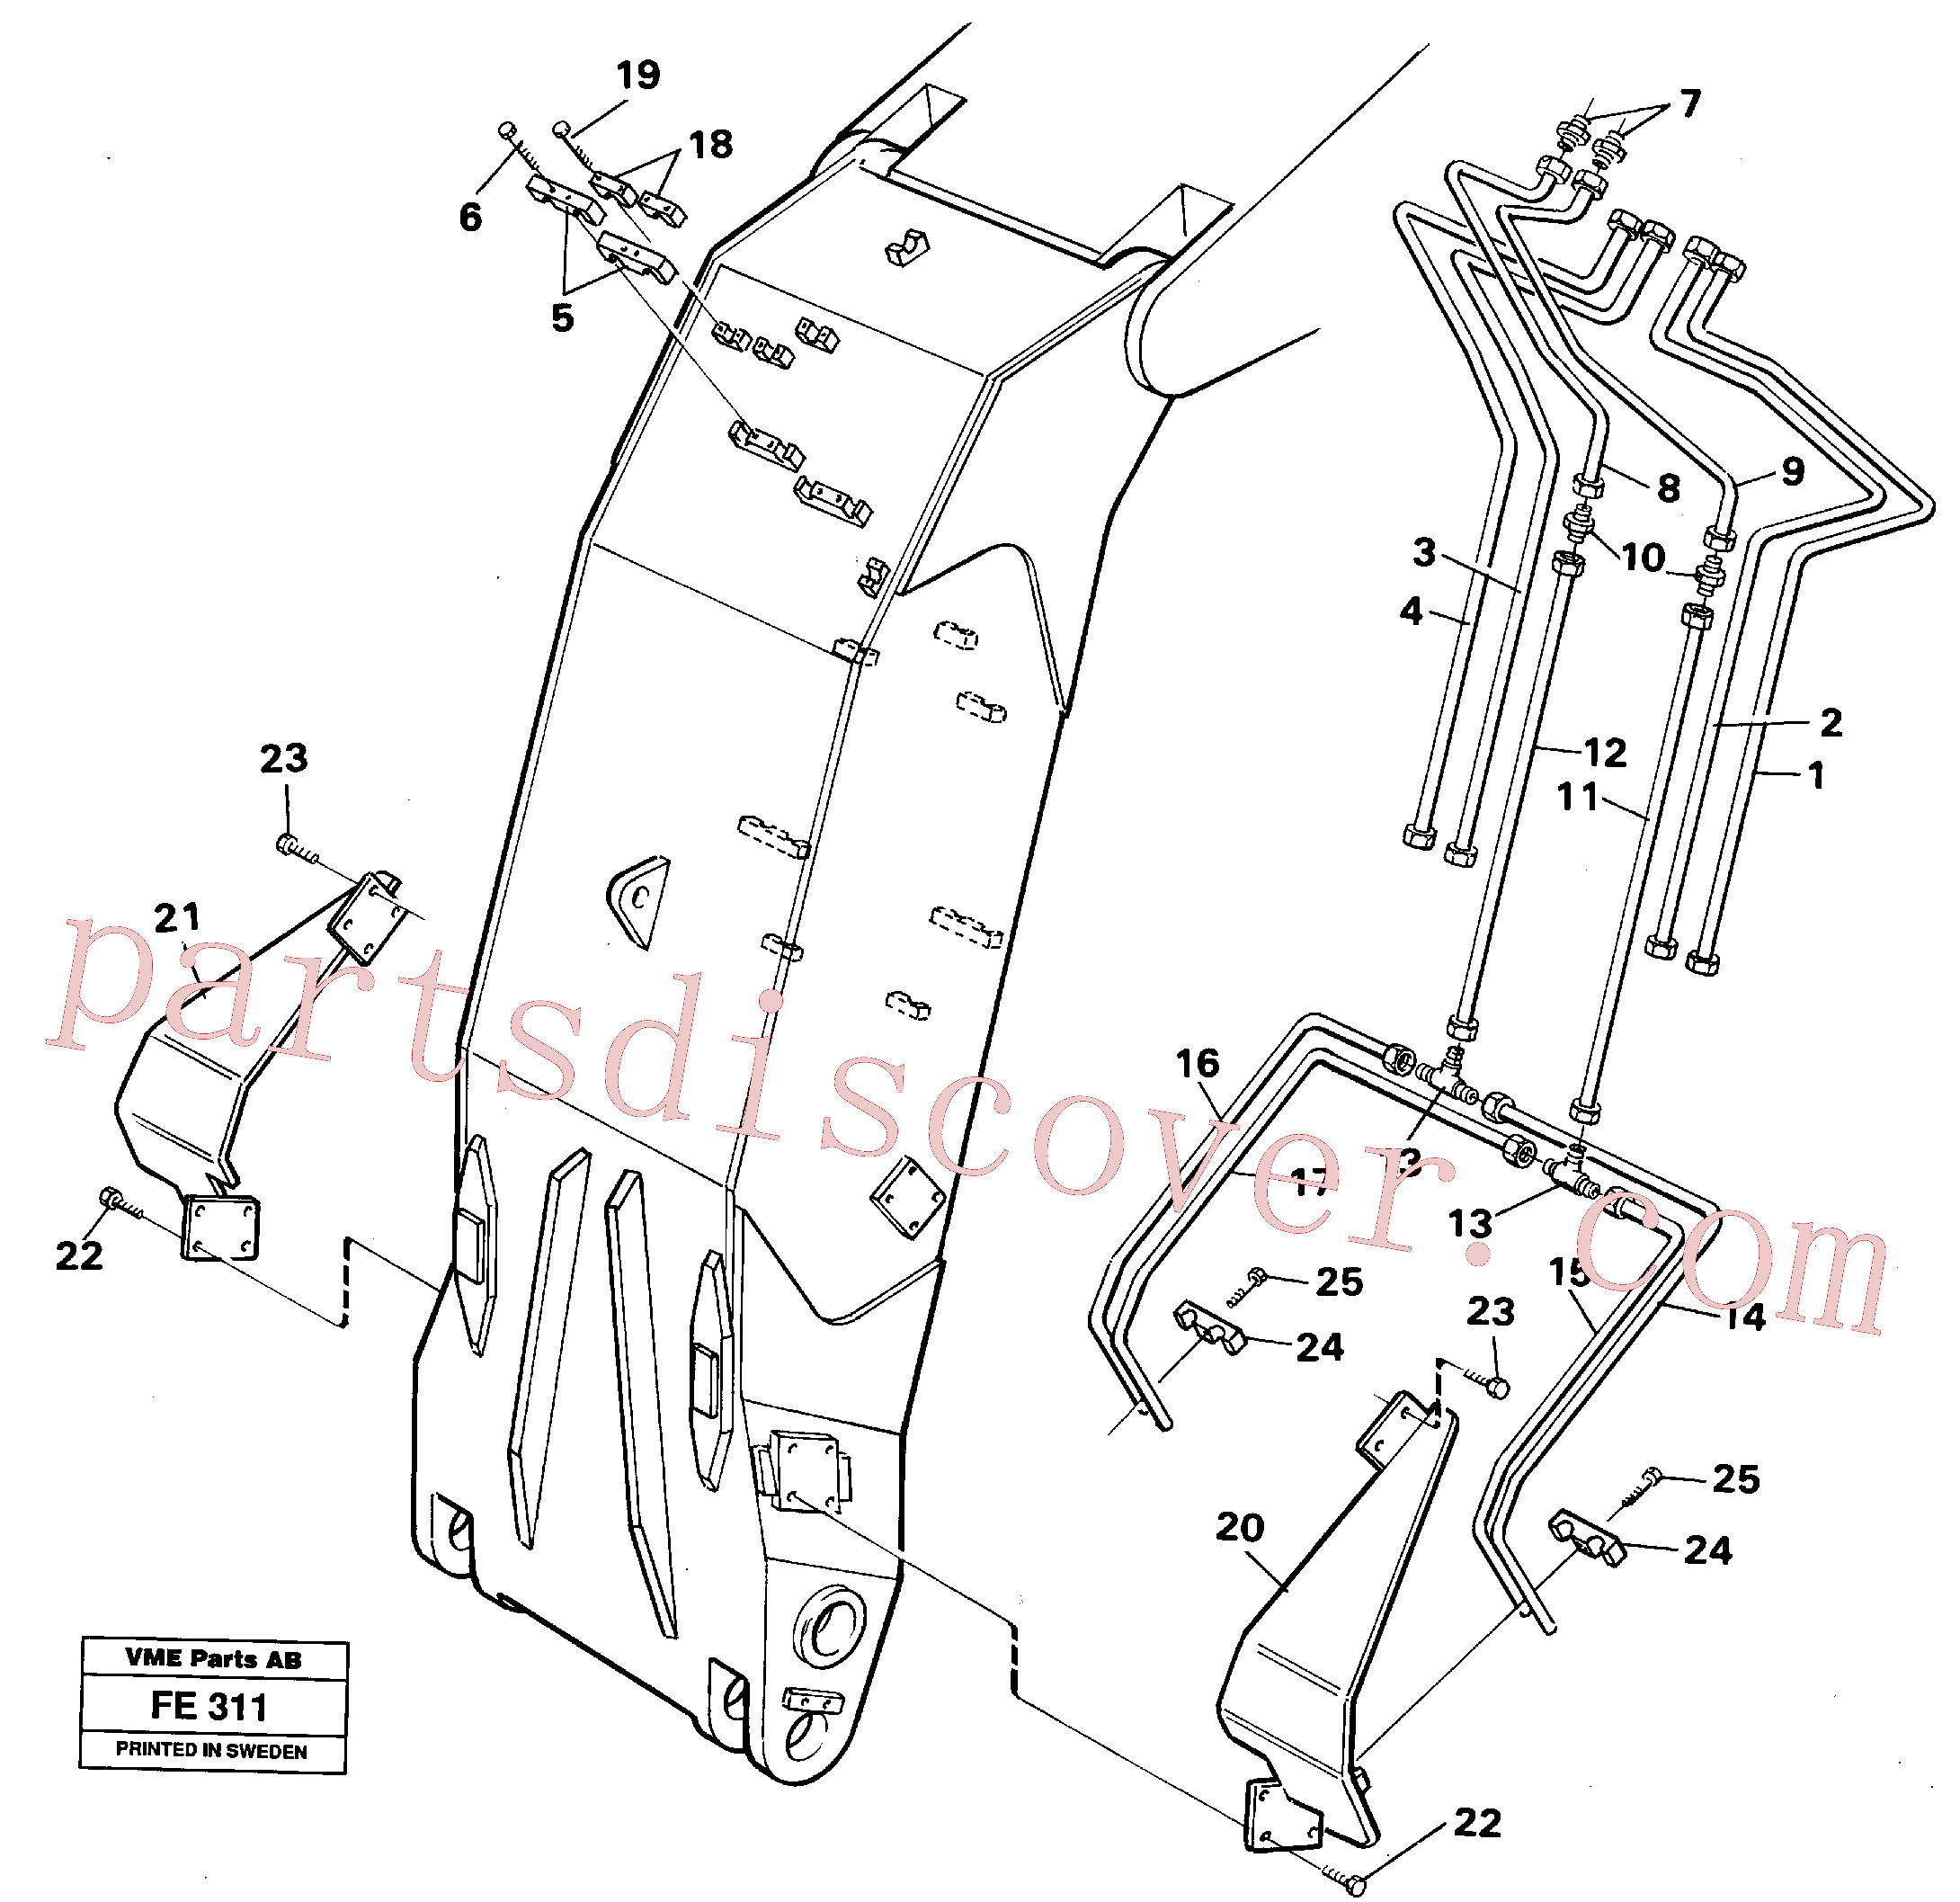 VOE14230320 for Volvo Hydraulic system, dipper arm, face shovel equipment(FE311 assembly)